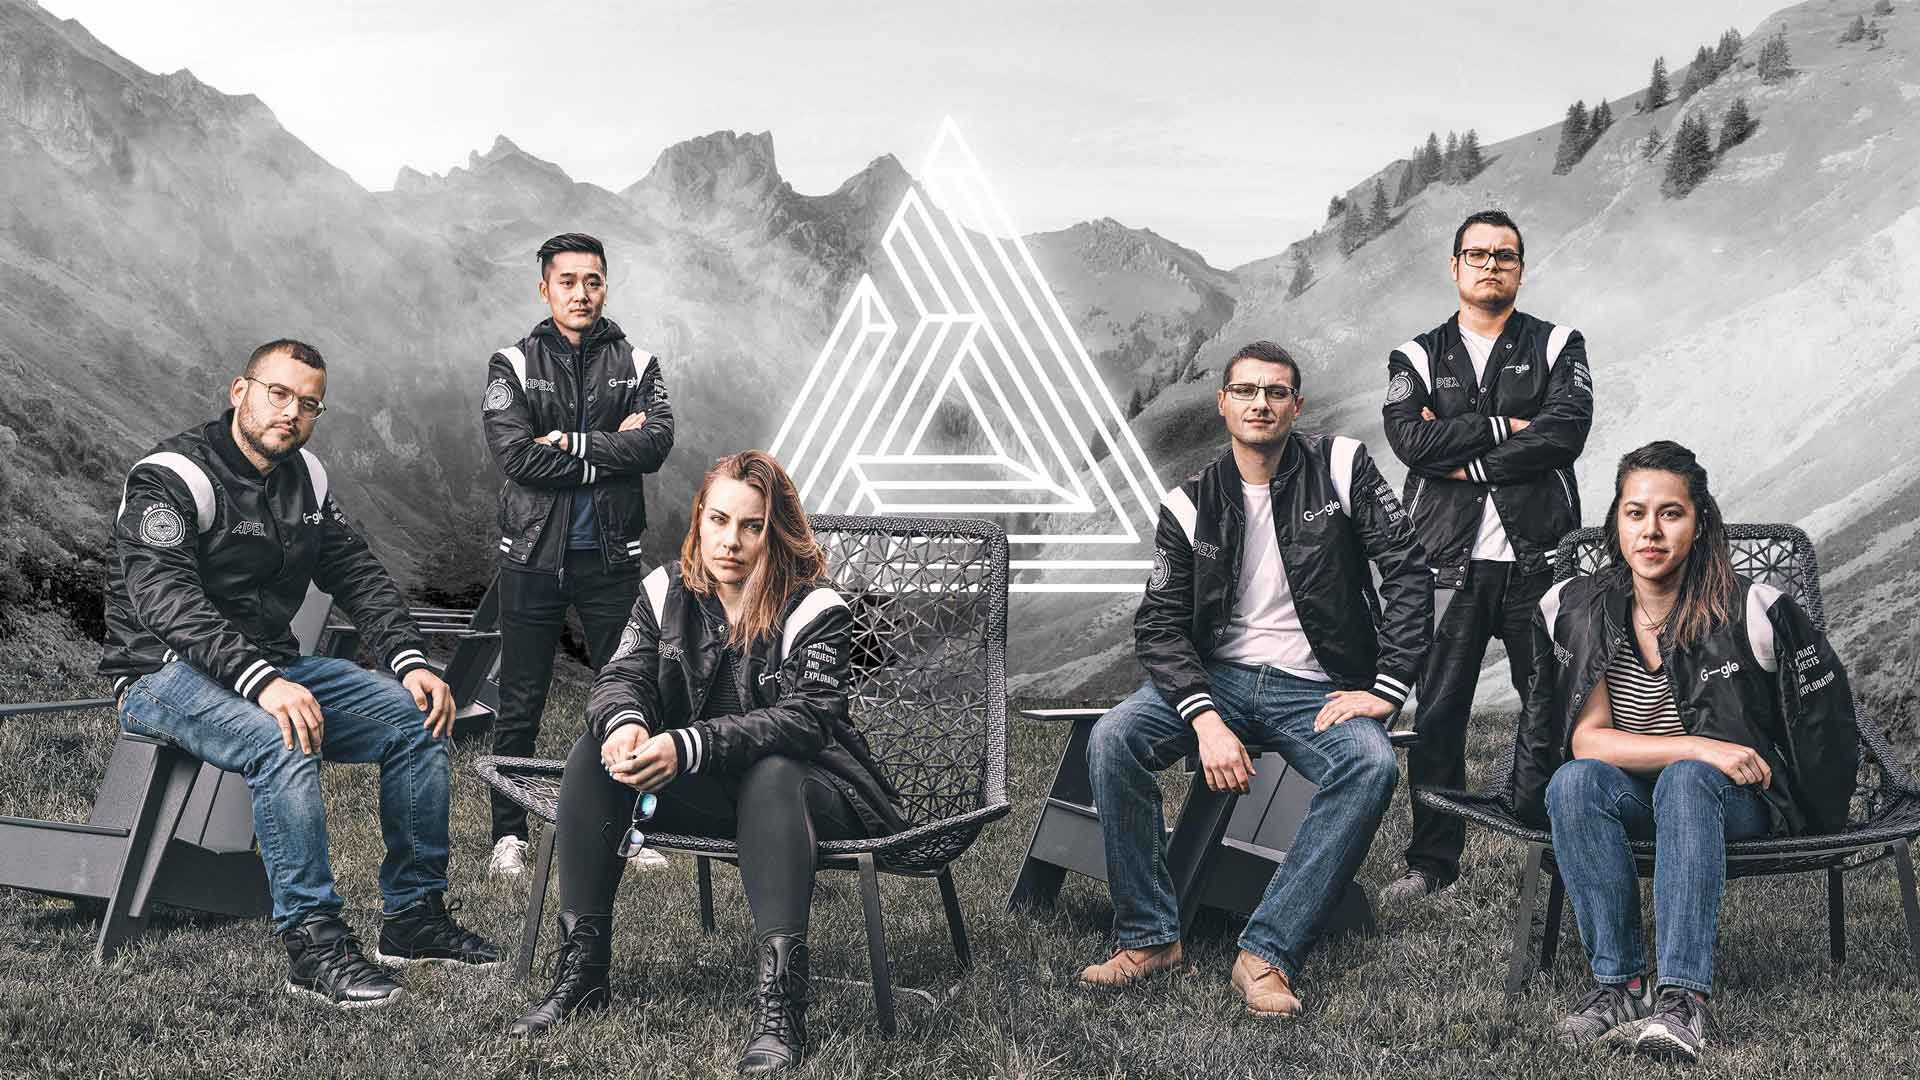 6 men and women in black jackets outdoors in front of a mountain